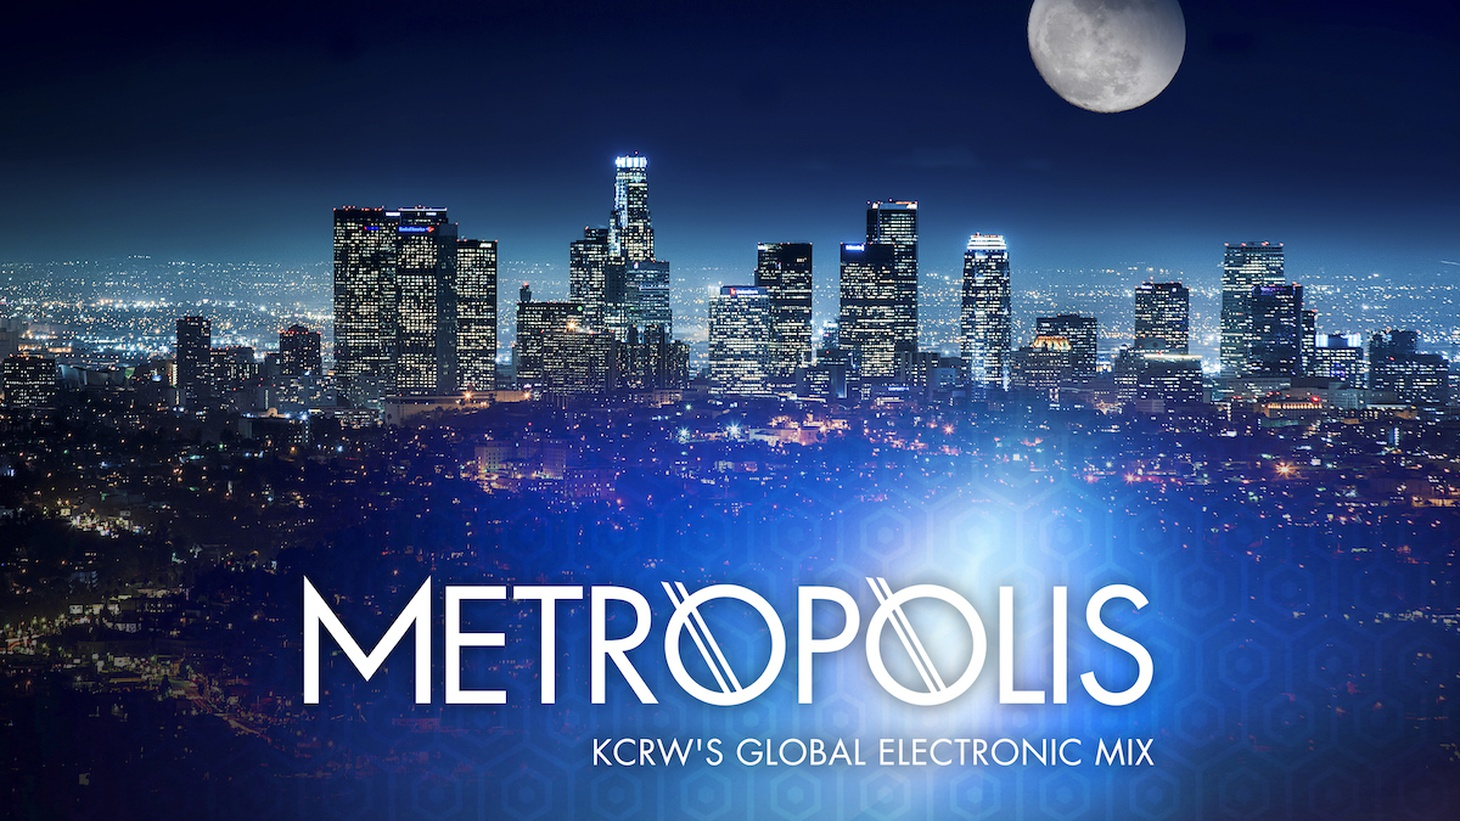 Metropolis welcomes Justin Kerrigan, director of the film &quotHuman Traffic&quot for an interview and run throught the film's soundtrack.